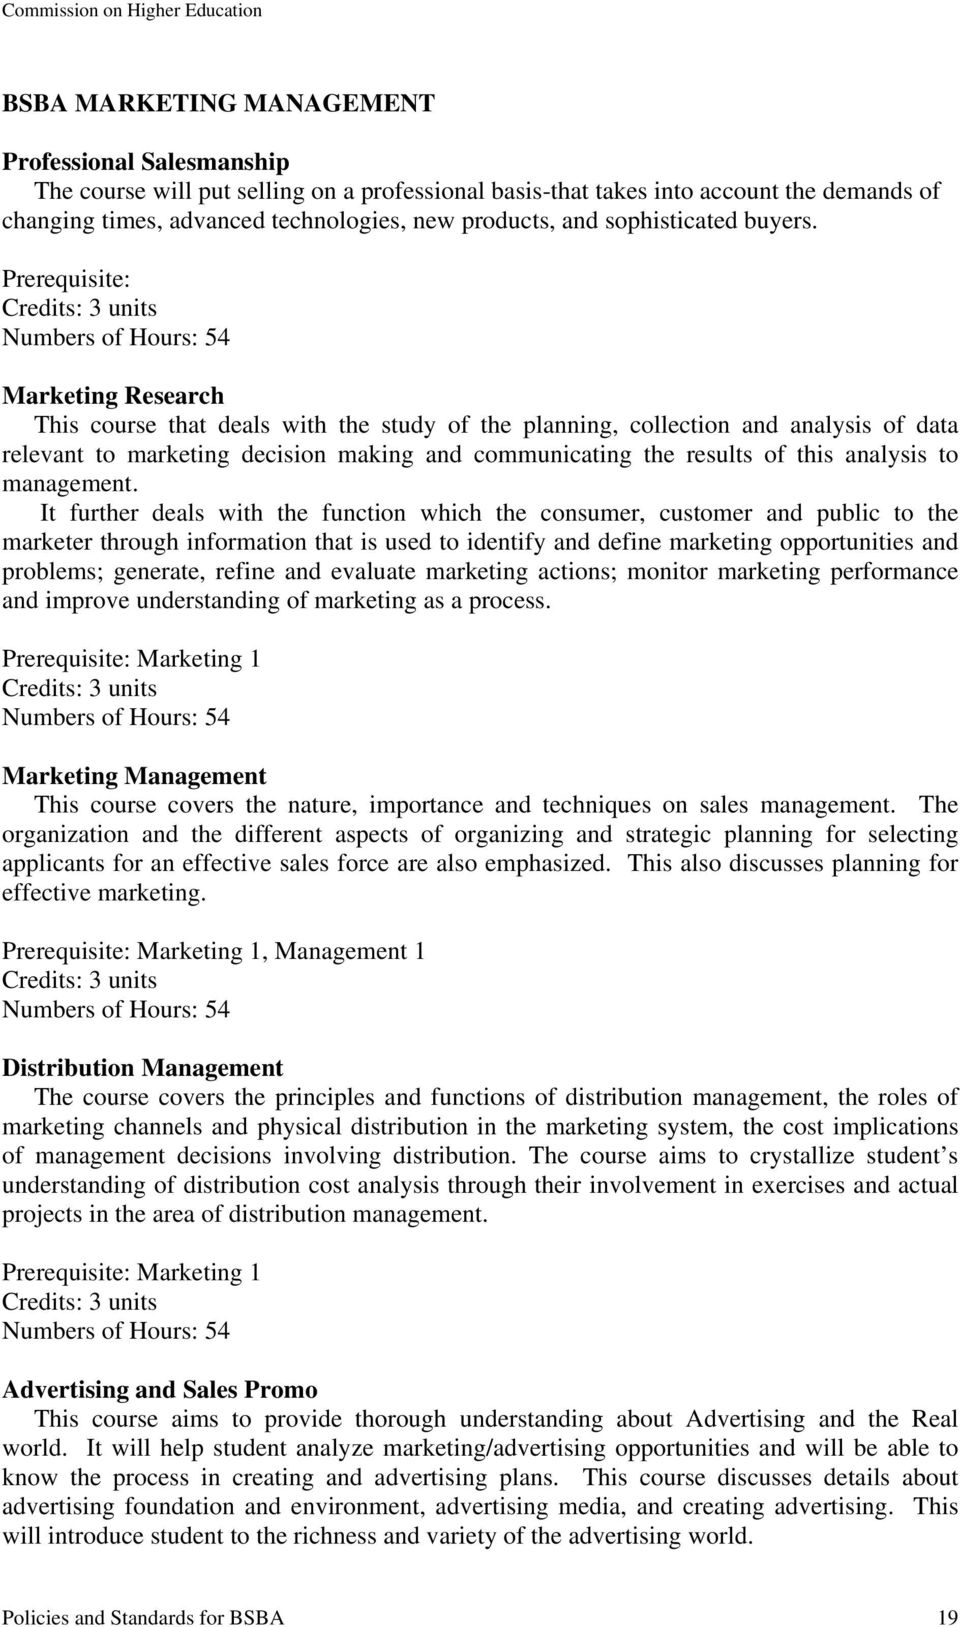 Prerequisite: Marketing Research This course that deals with the study of the planning, collection and analysis of data relevant to marketing decision making and communicating the results of this